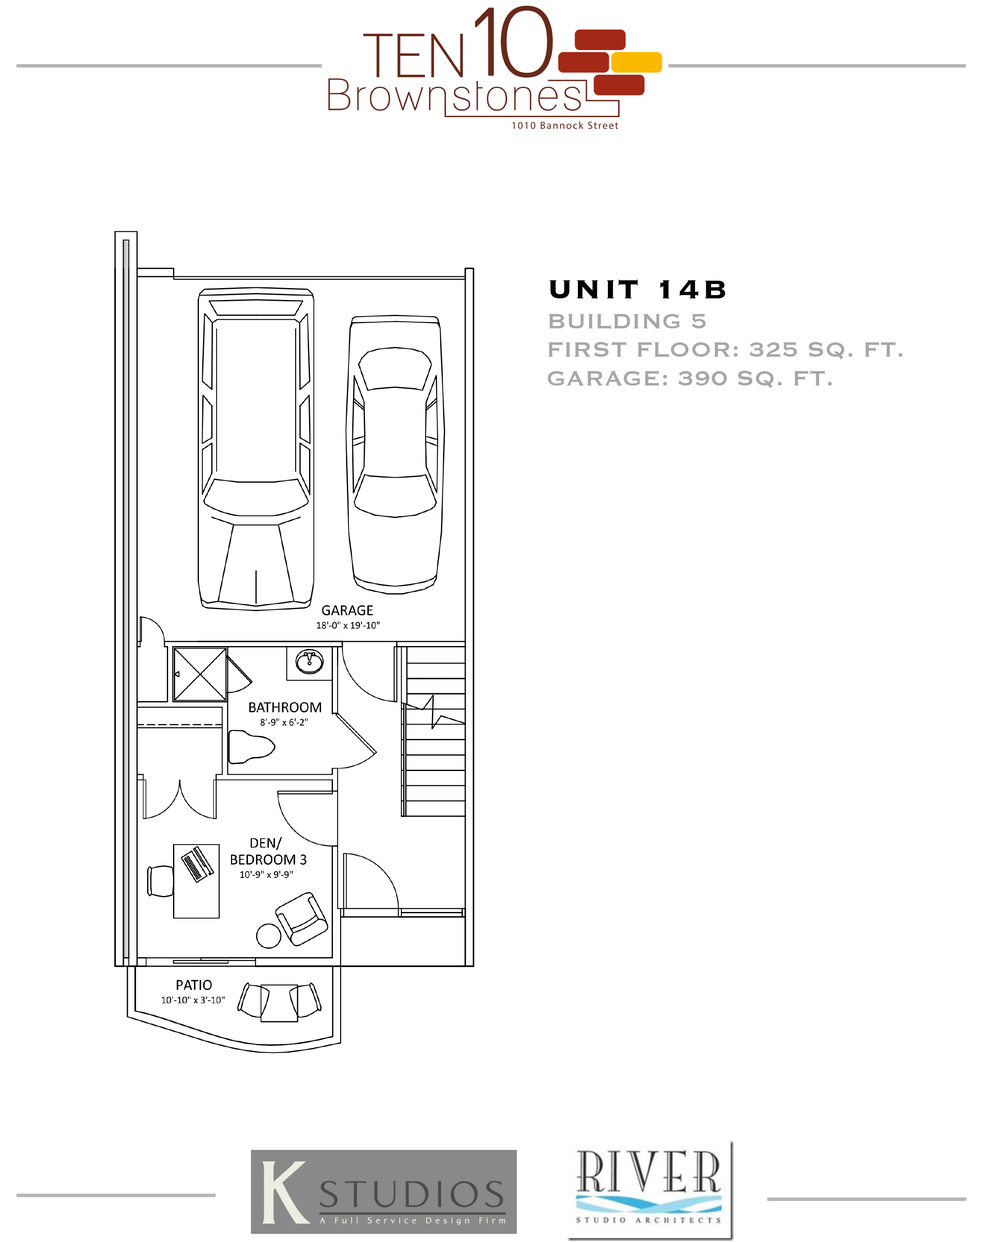 Click image to view & download Unit 14B floor plan